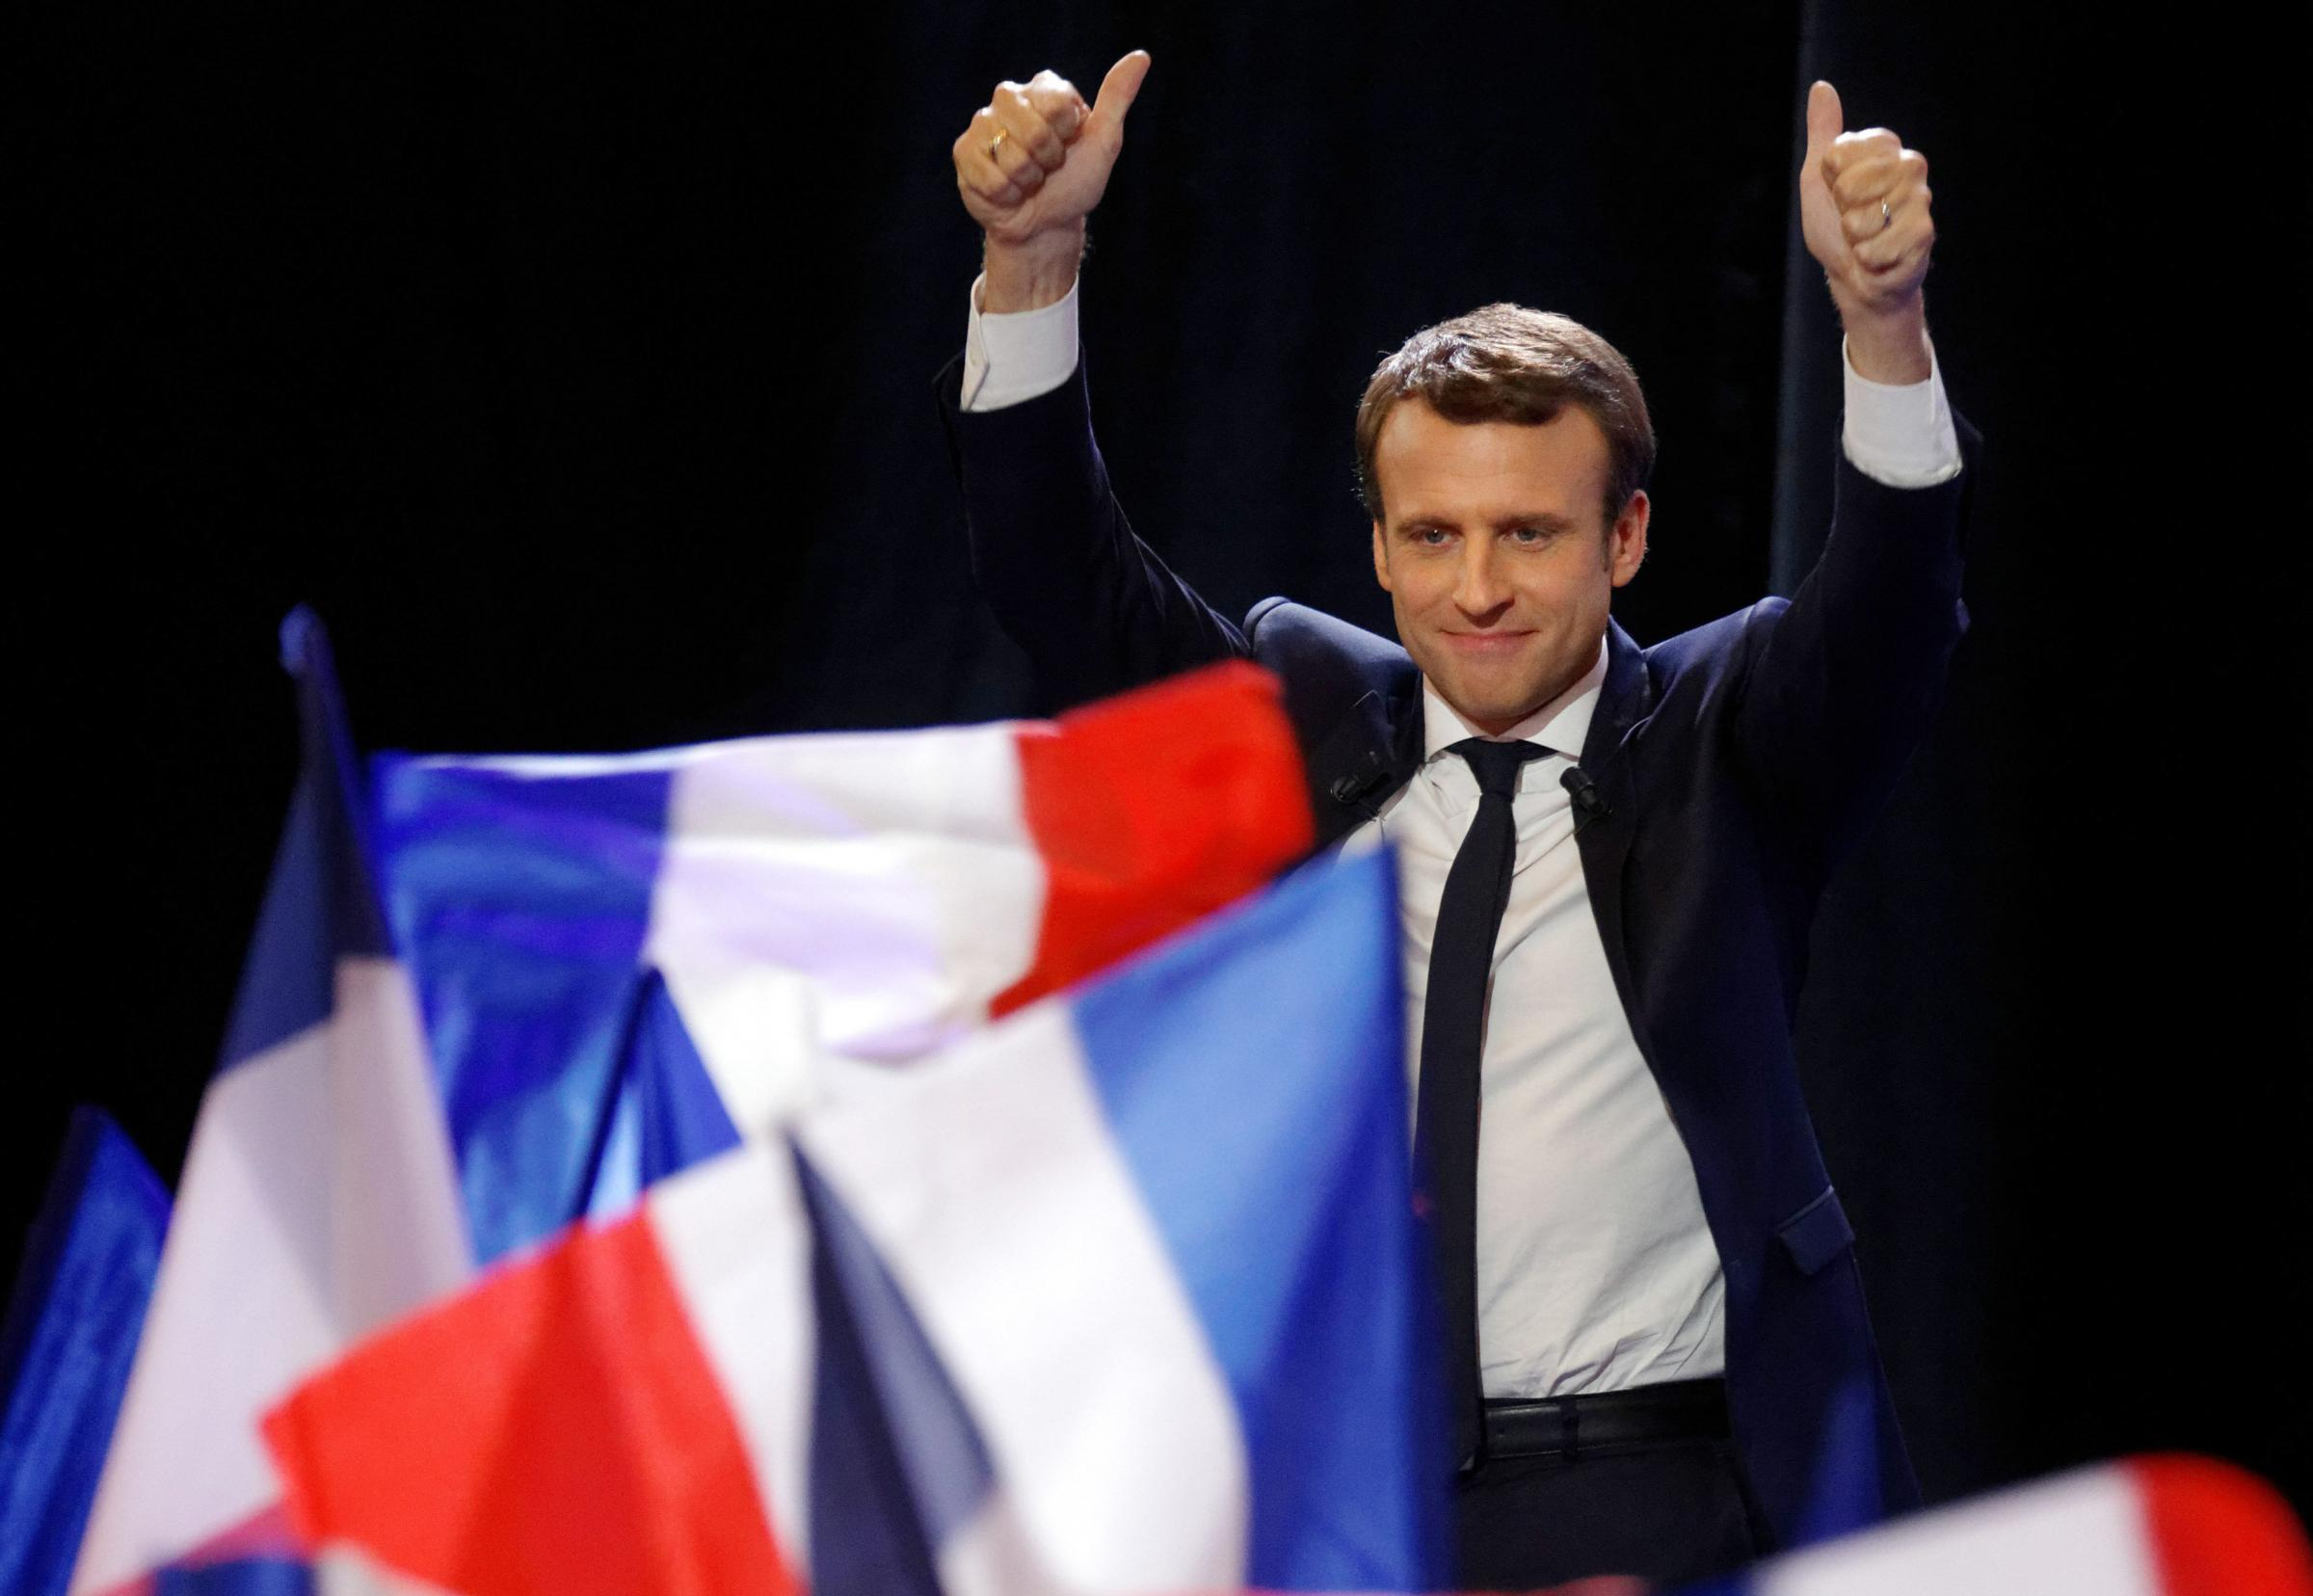 Emmanuel Macron built a new centrist party in a matter of months